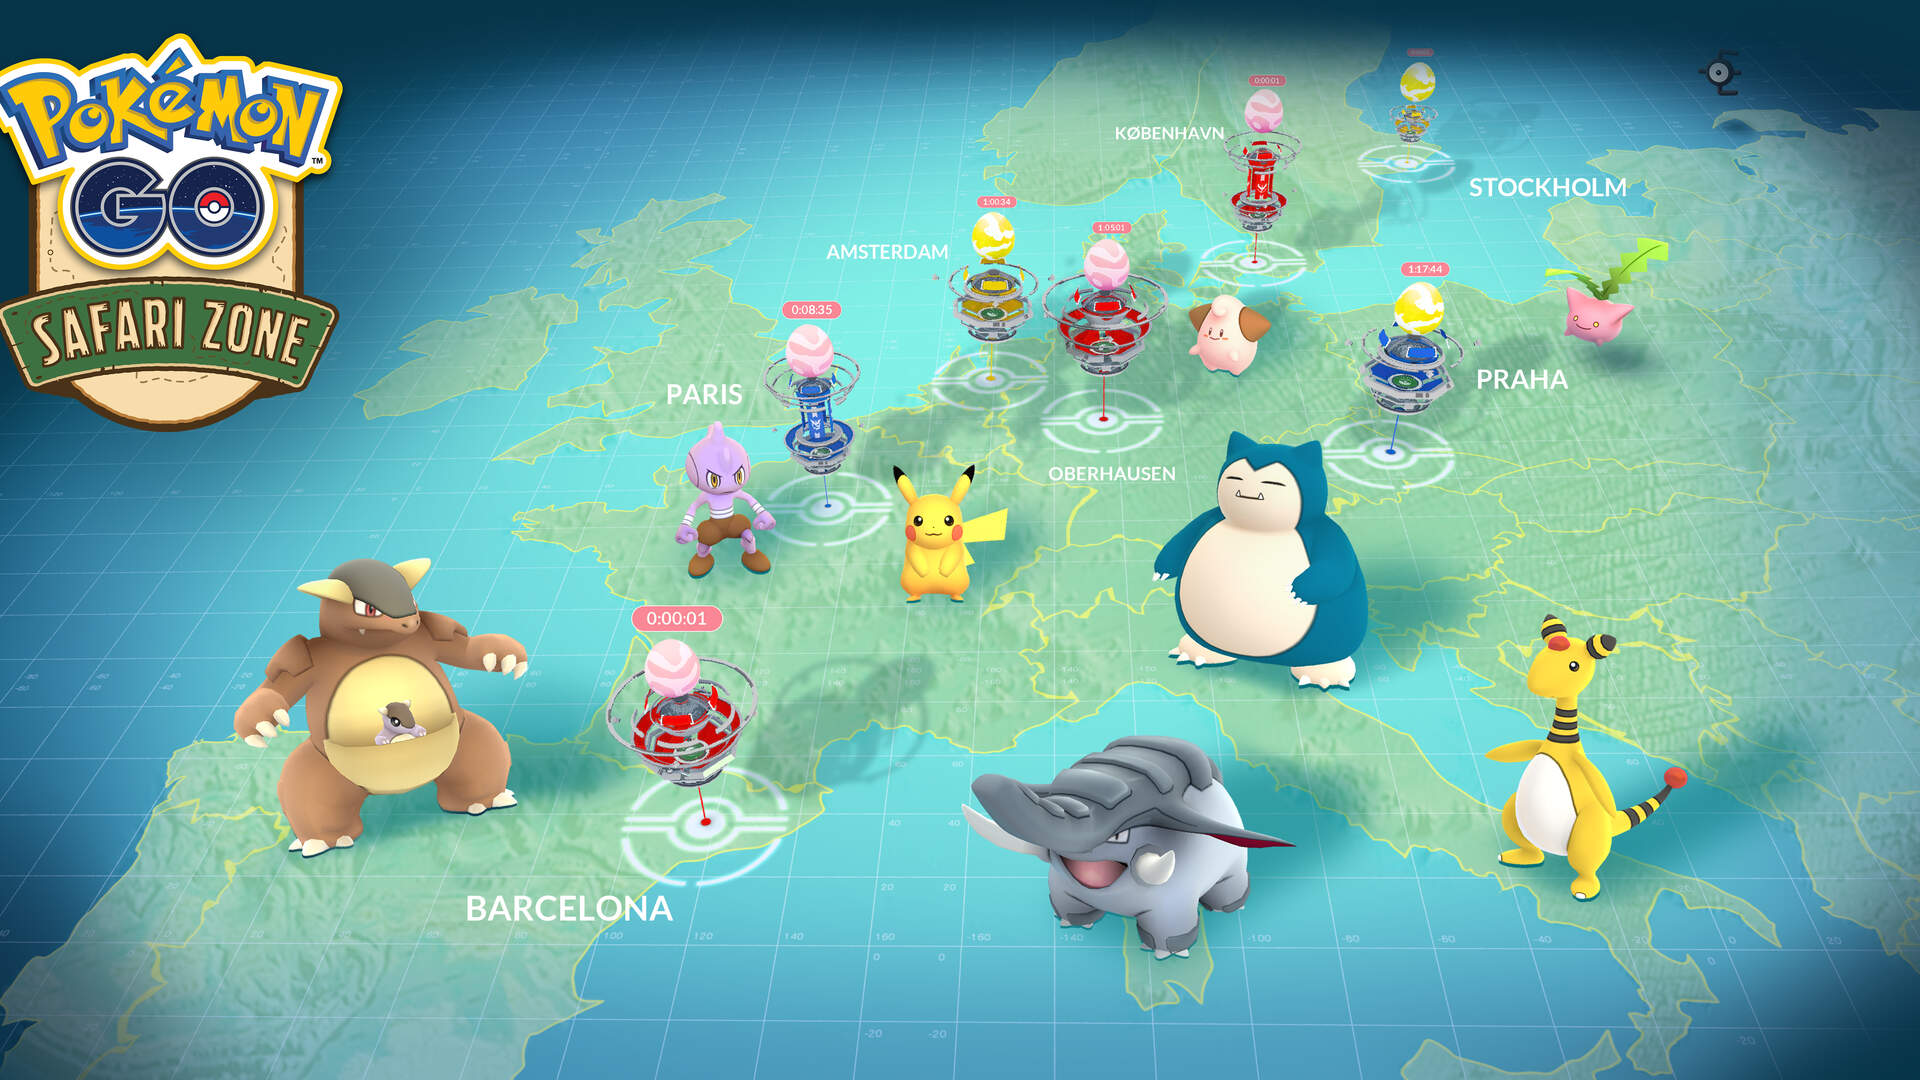 The Pokemon Go Fest Asks Players From All Around the World to Team Up for Special Bonuses